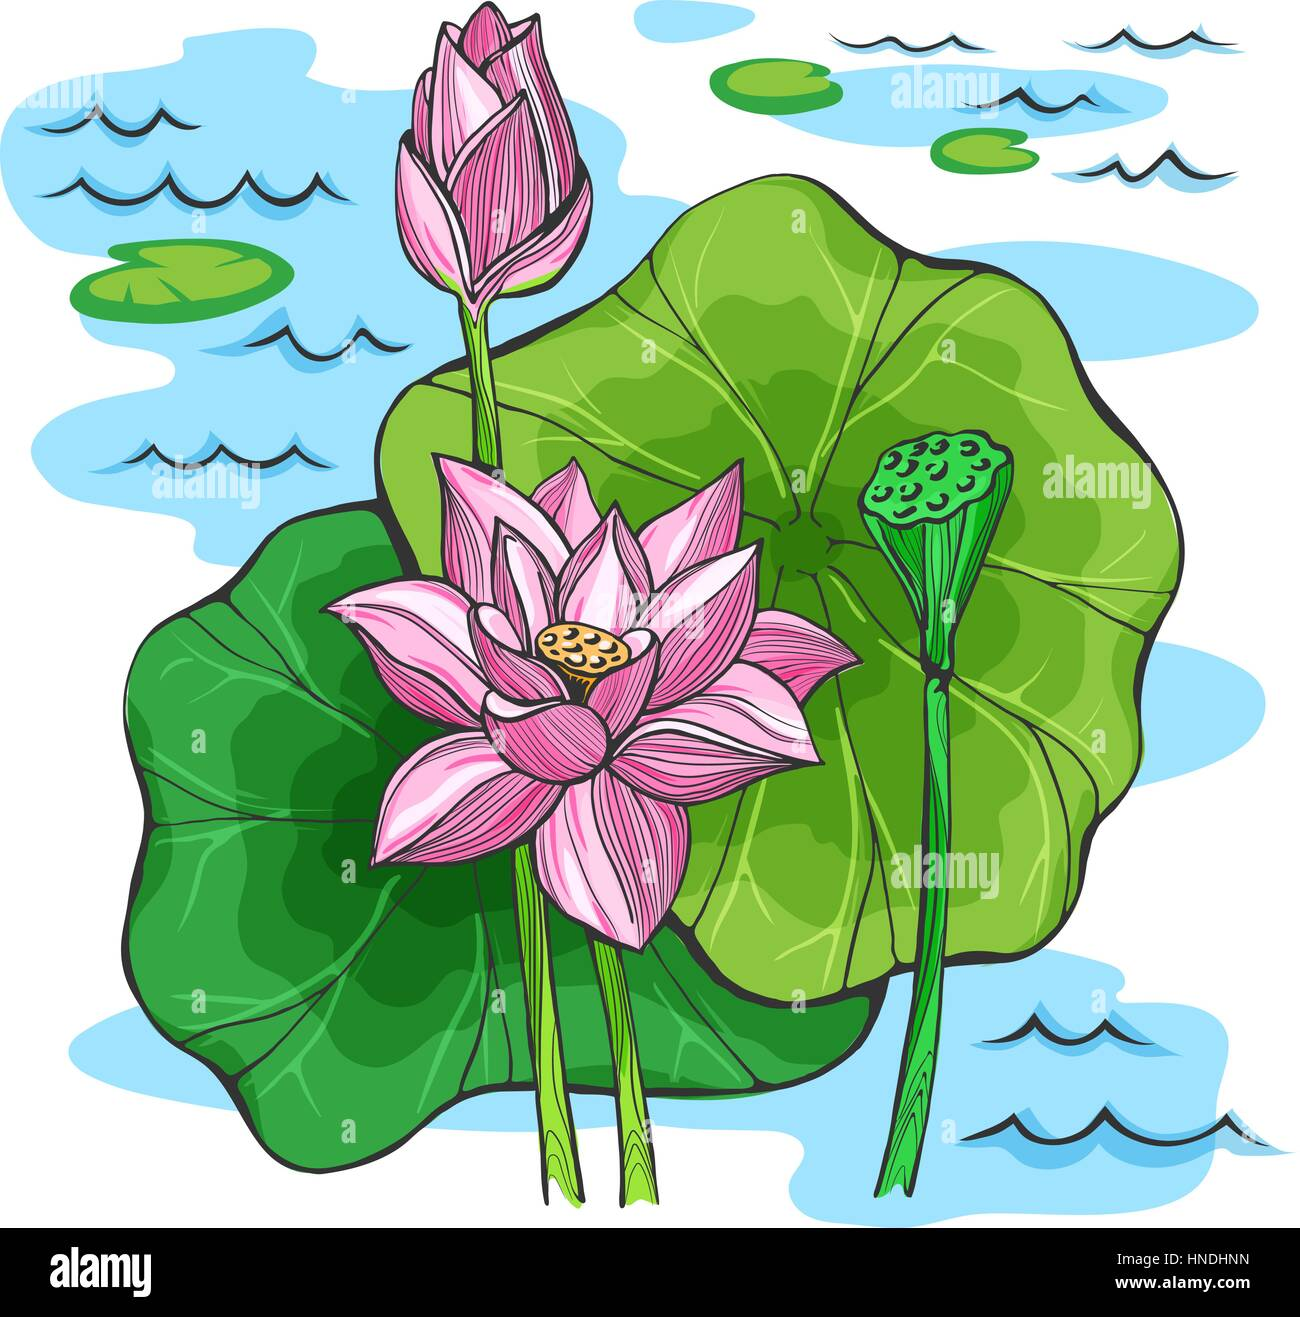 Vector colored sketch lotus flowers stock vector art illustration vector colored sketch lotus flowers mightylinksfo